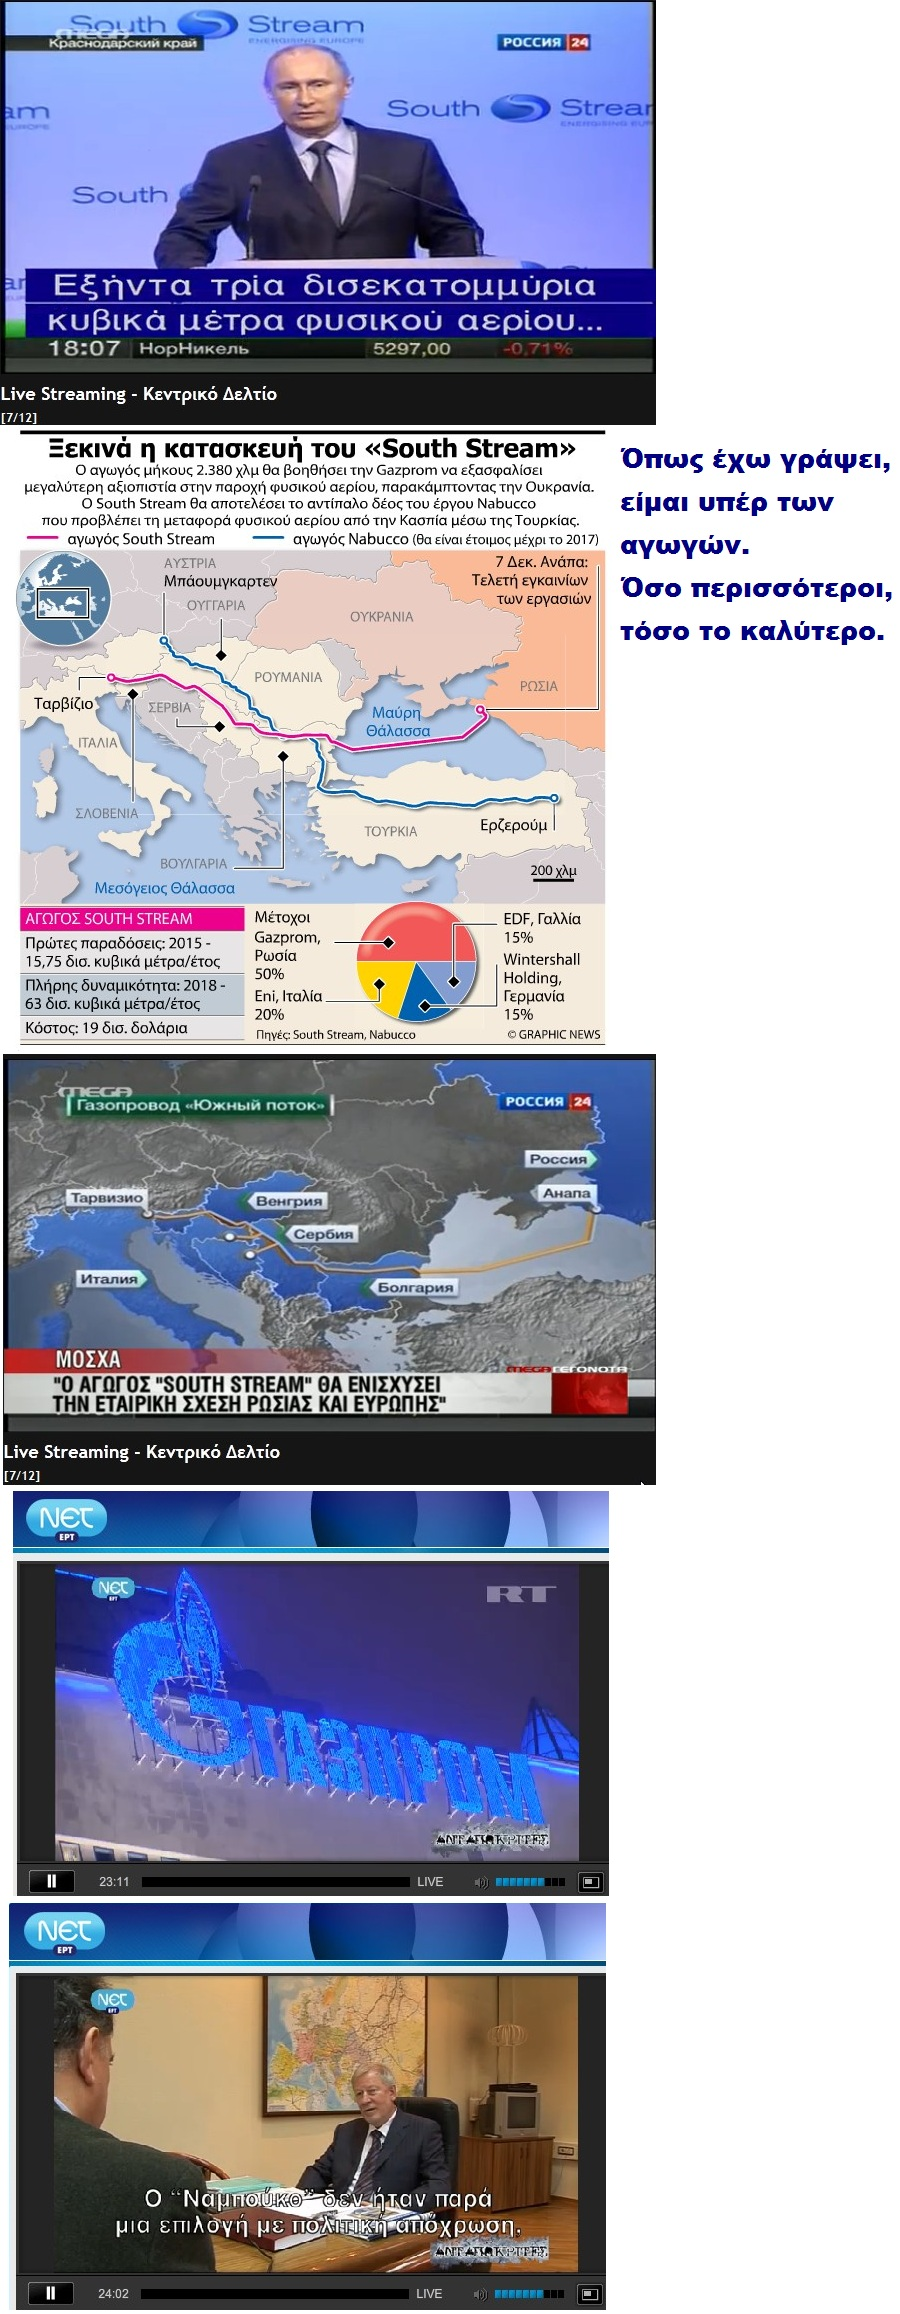 RUSSIA SOUTH STREAM 03 01 081212